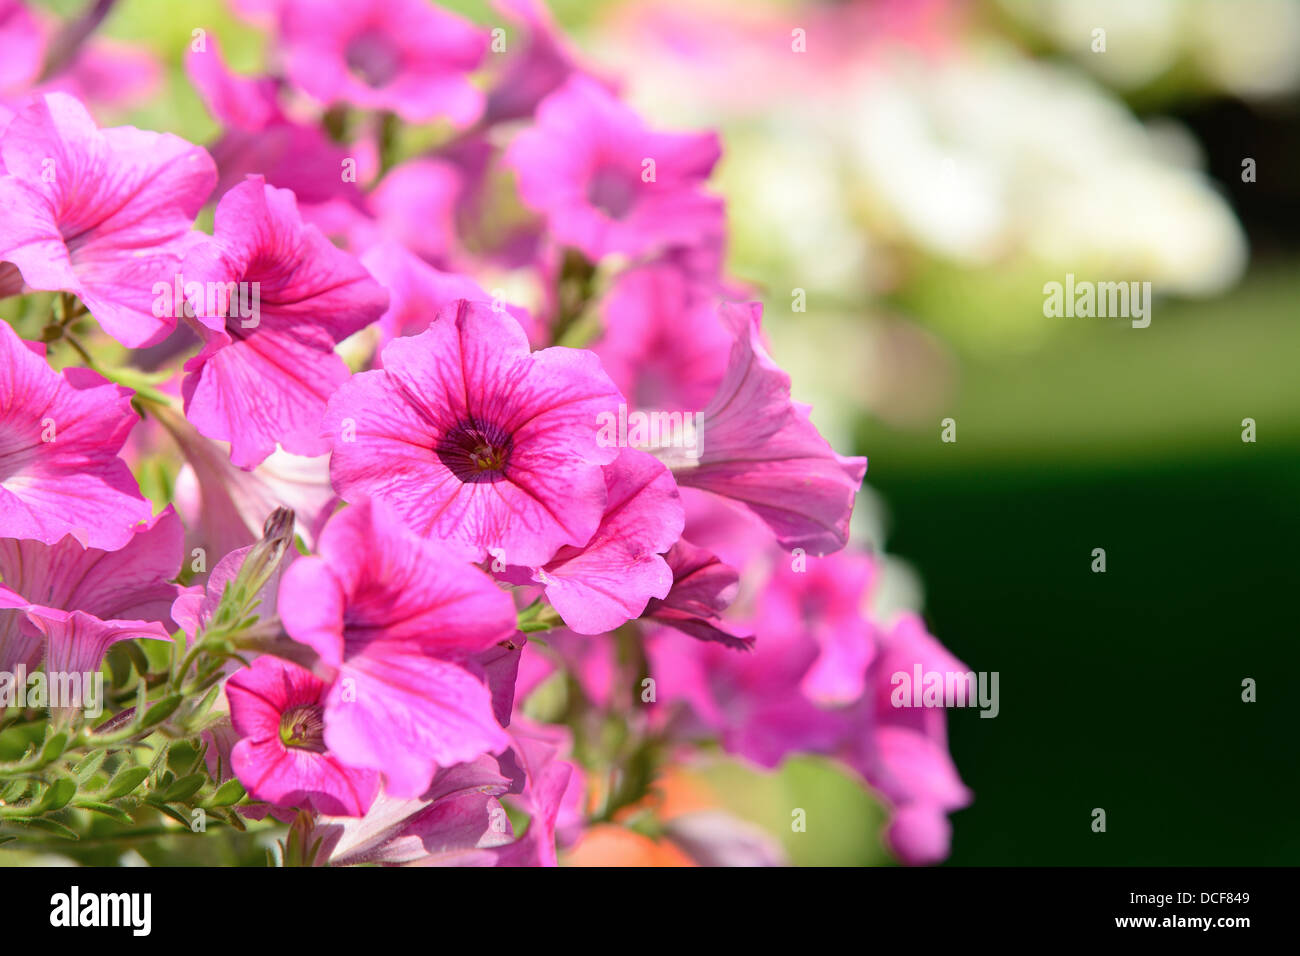 Closeup shot with pink bloom Petunia in the garden. - Stock Image